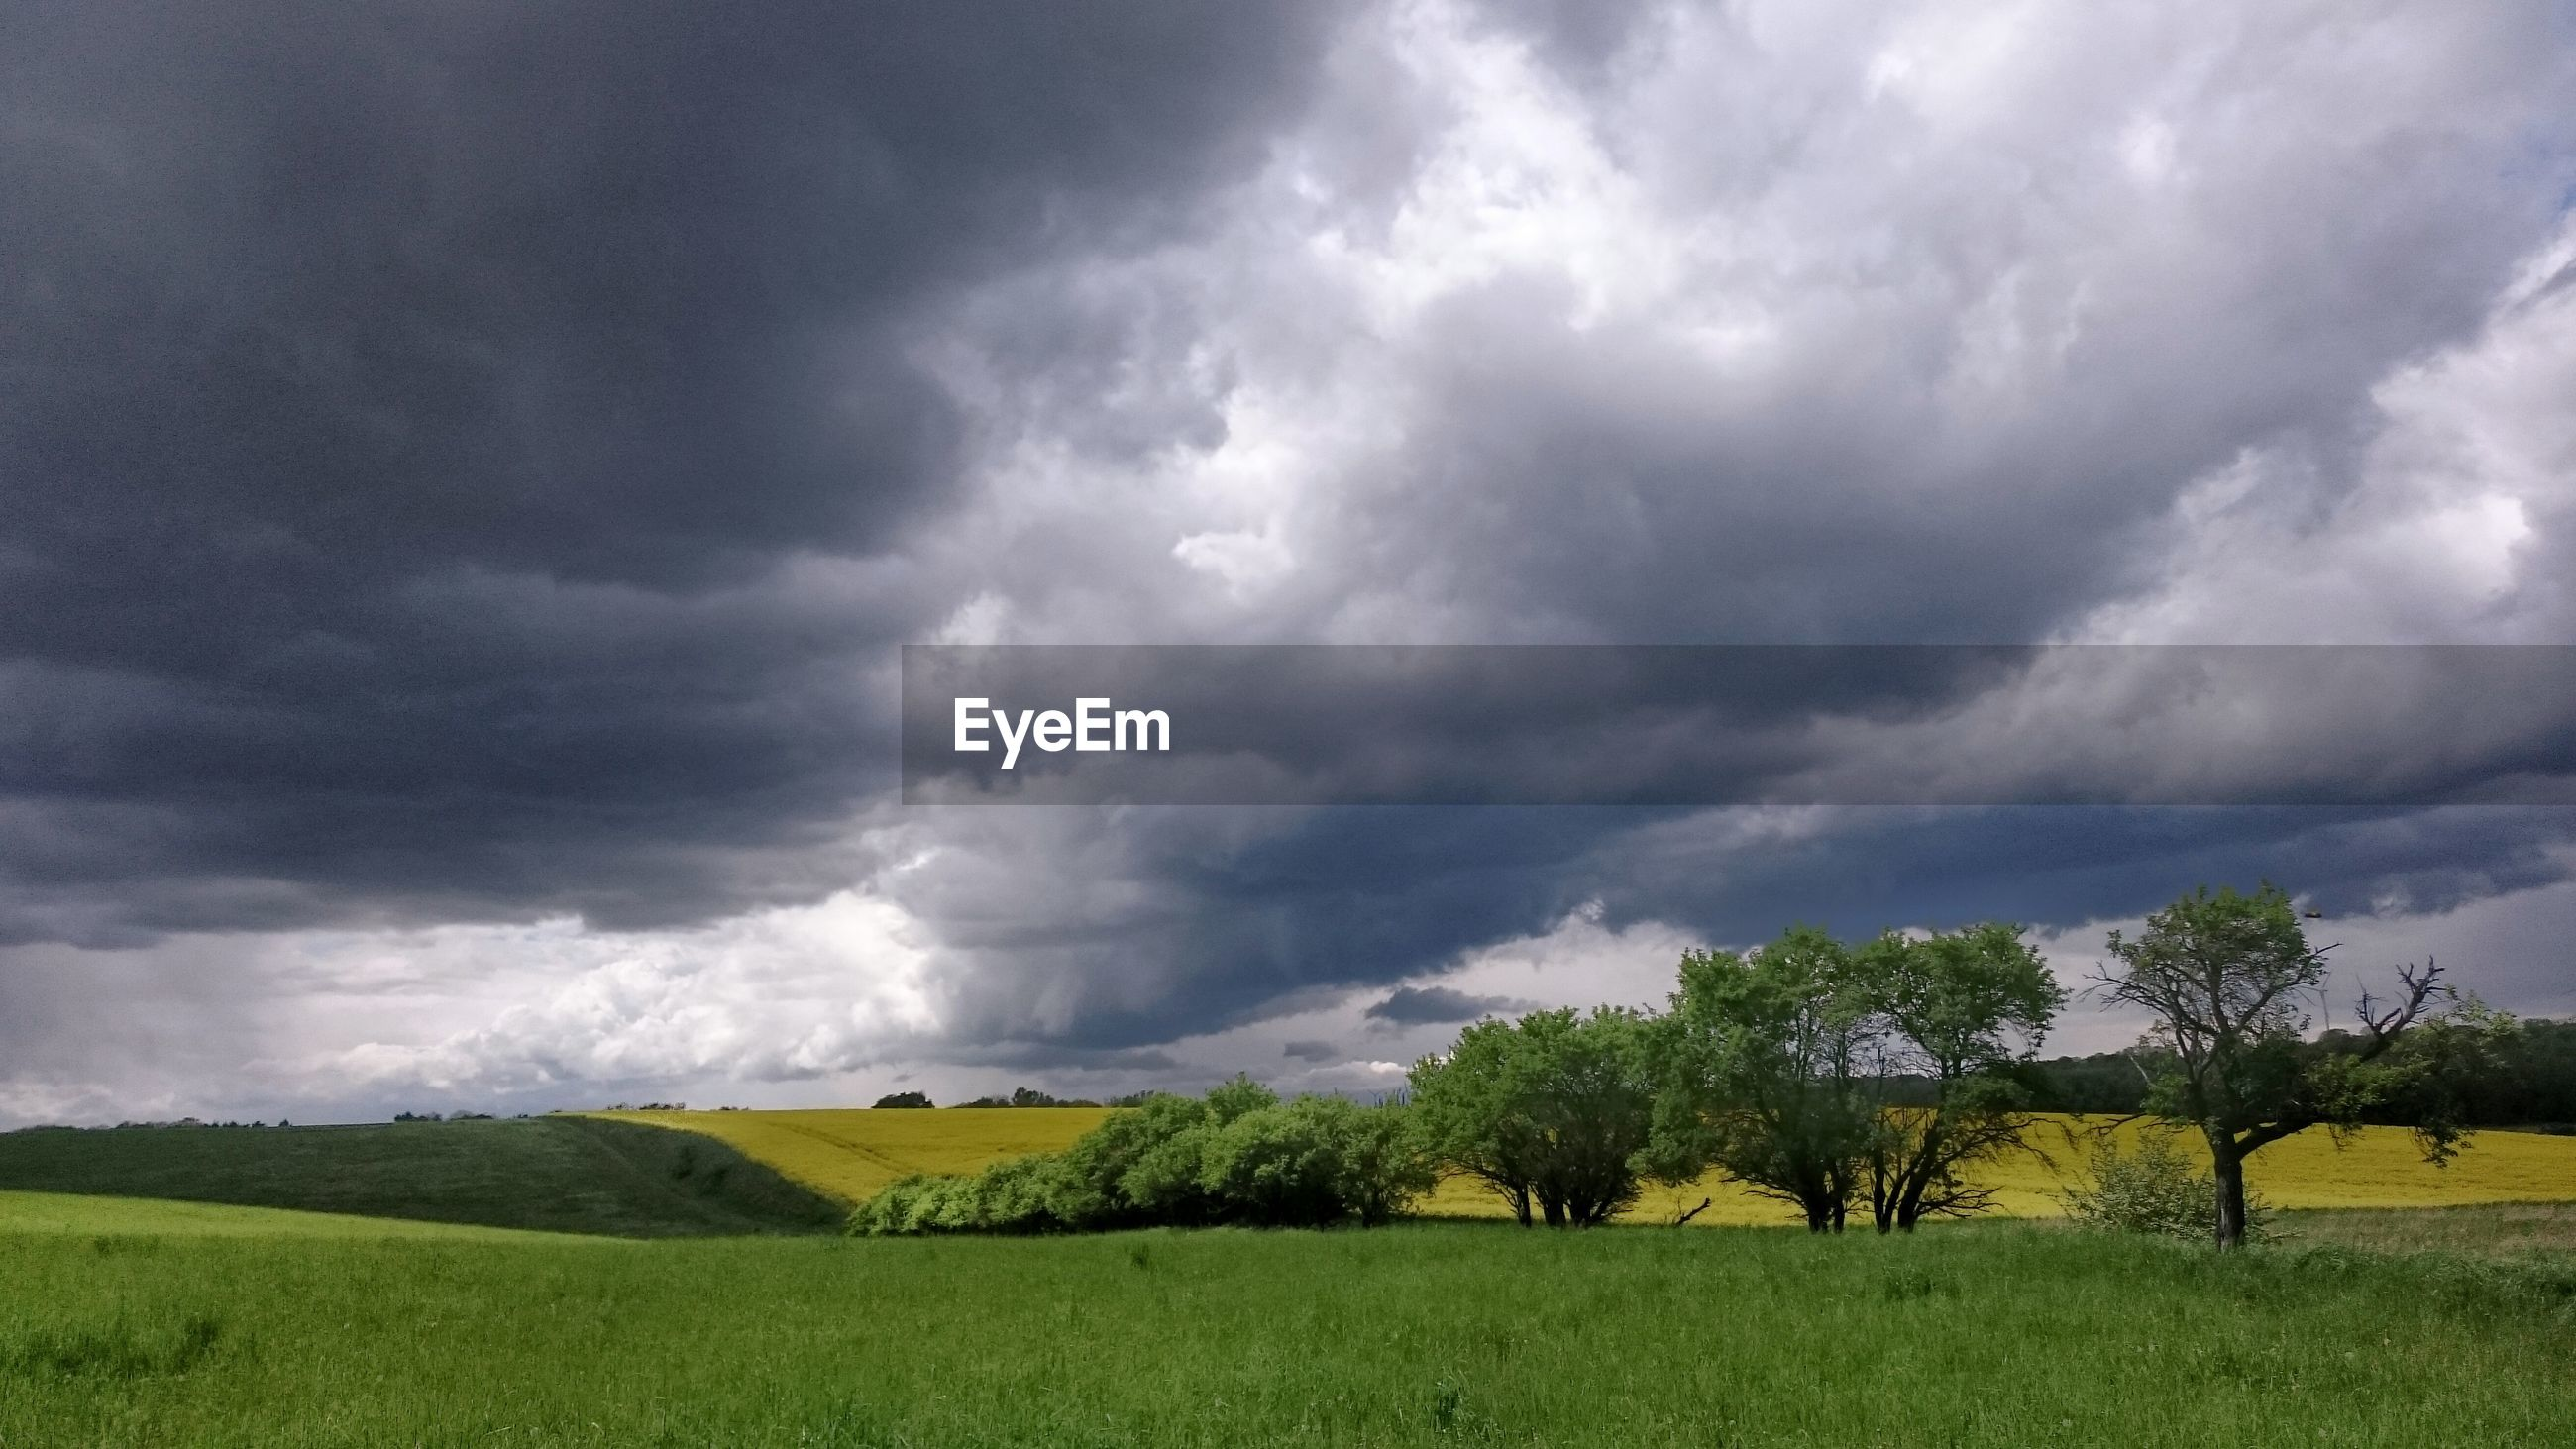 Trees on grassy field against cloudy sky